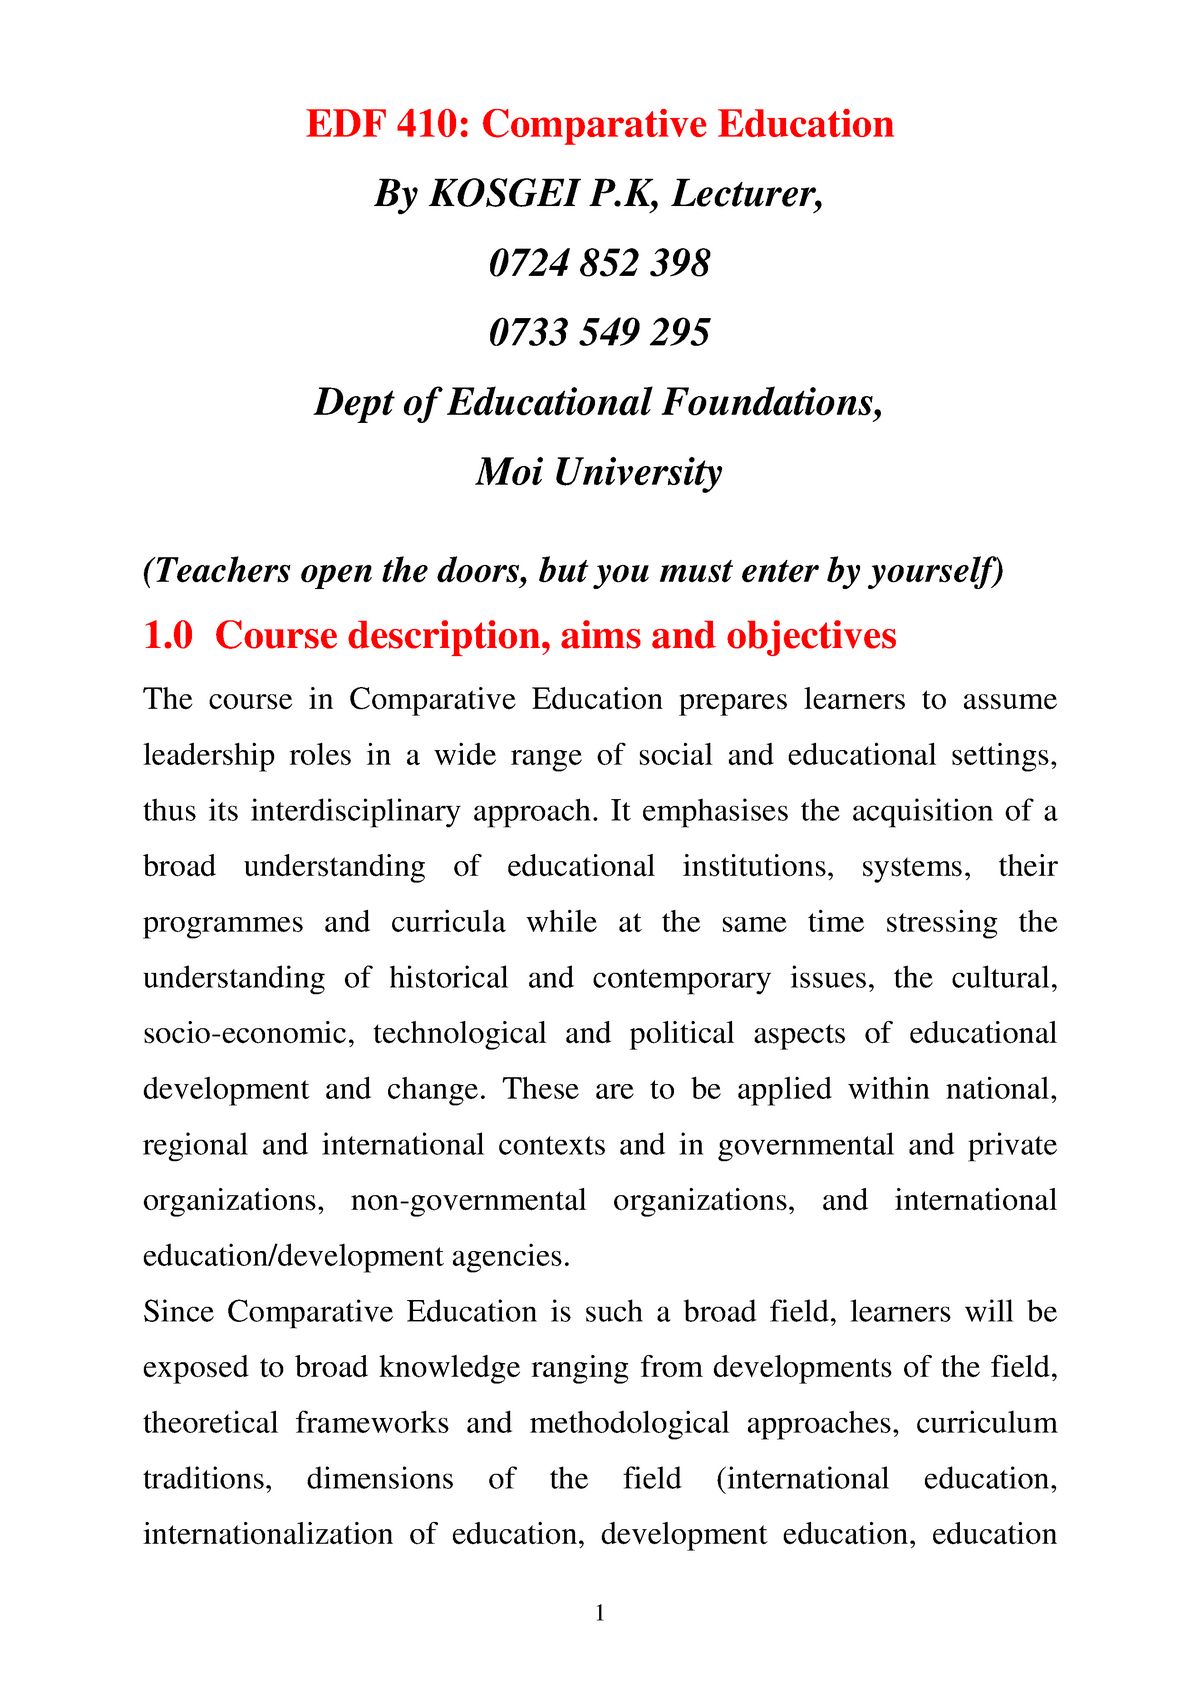 EDF 411 Comparative Education Notes-1-1 - EDB: Education - StuDocu